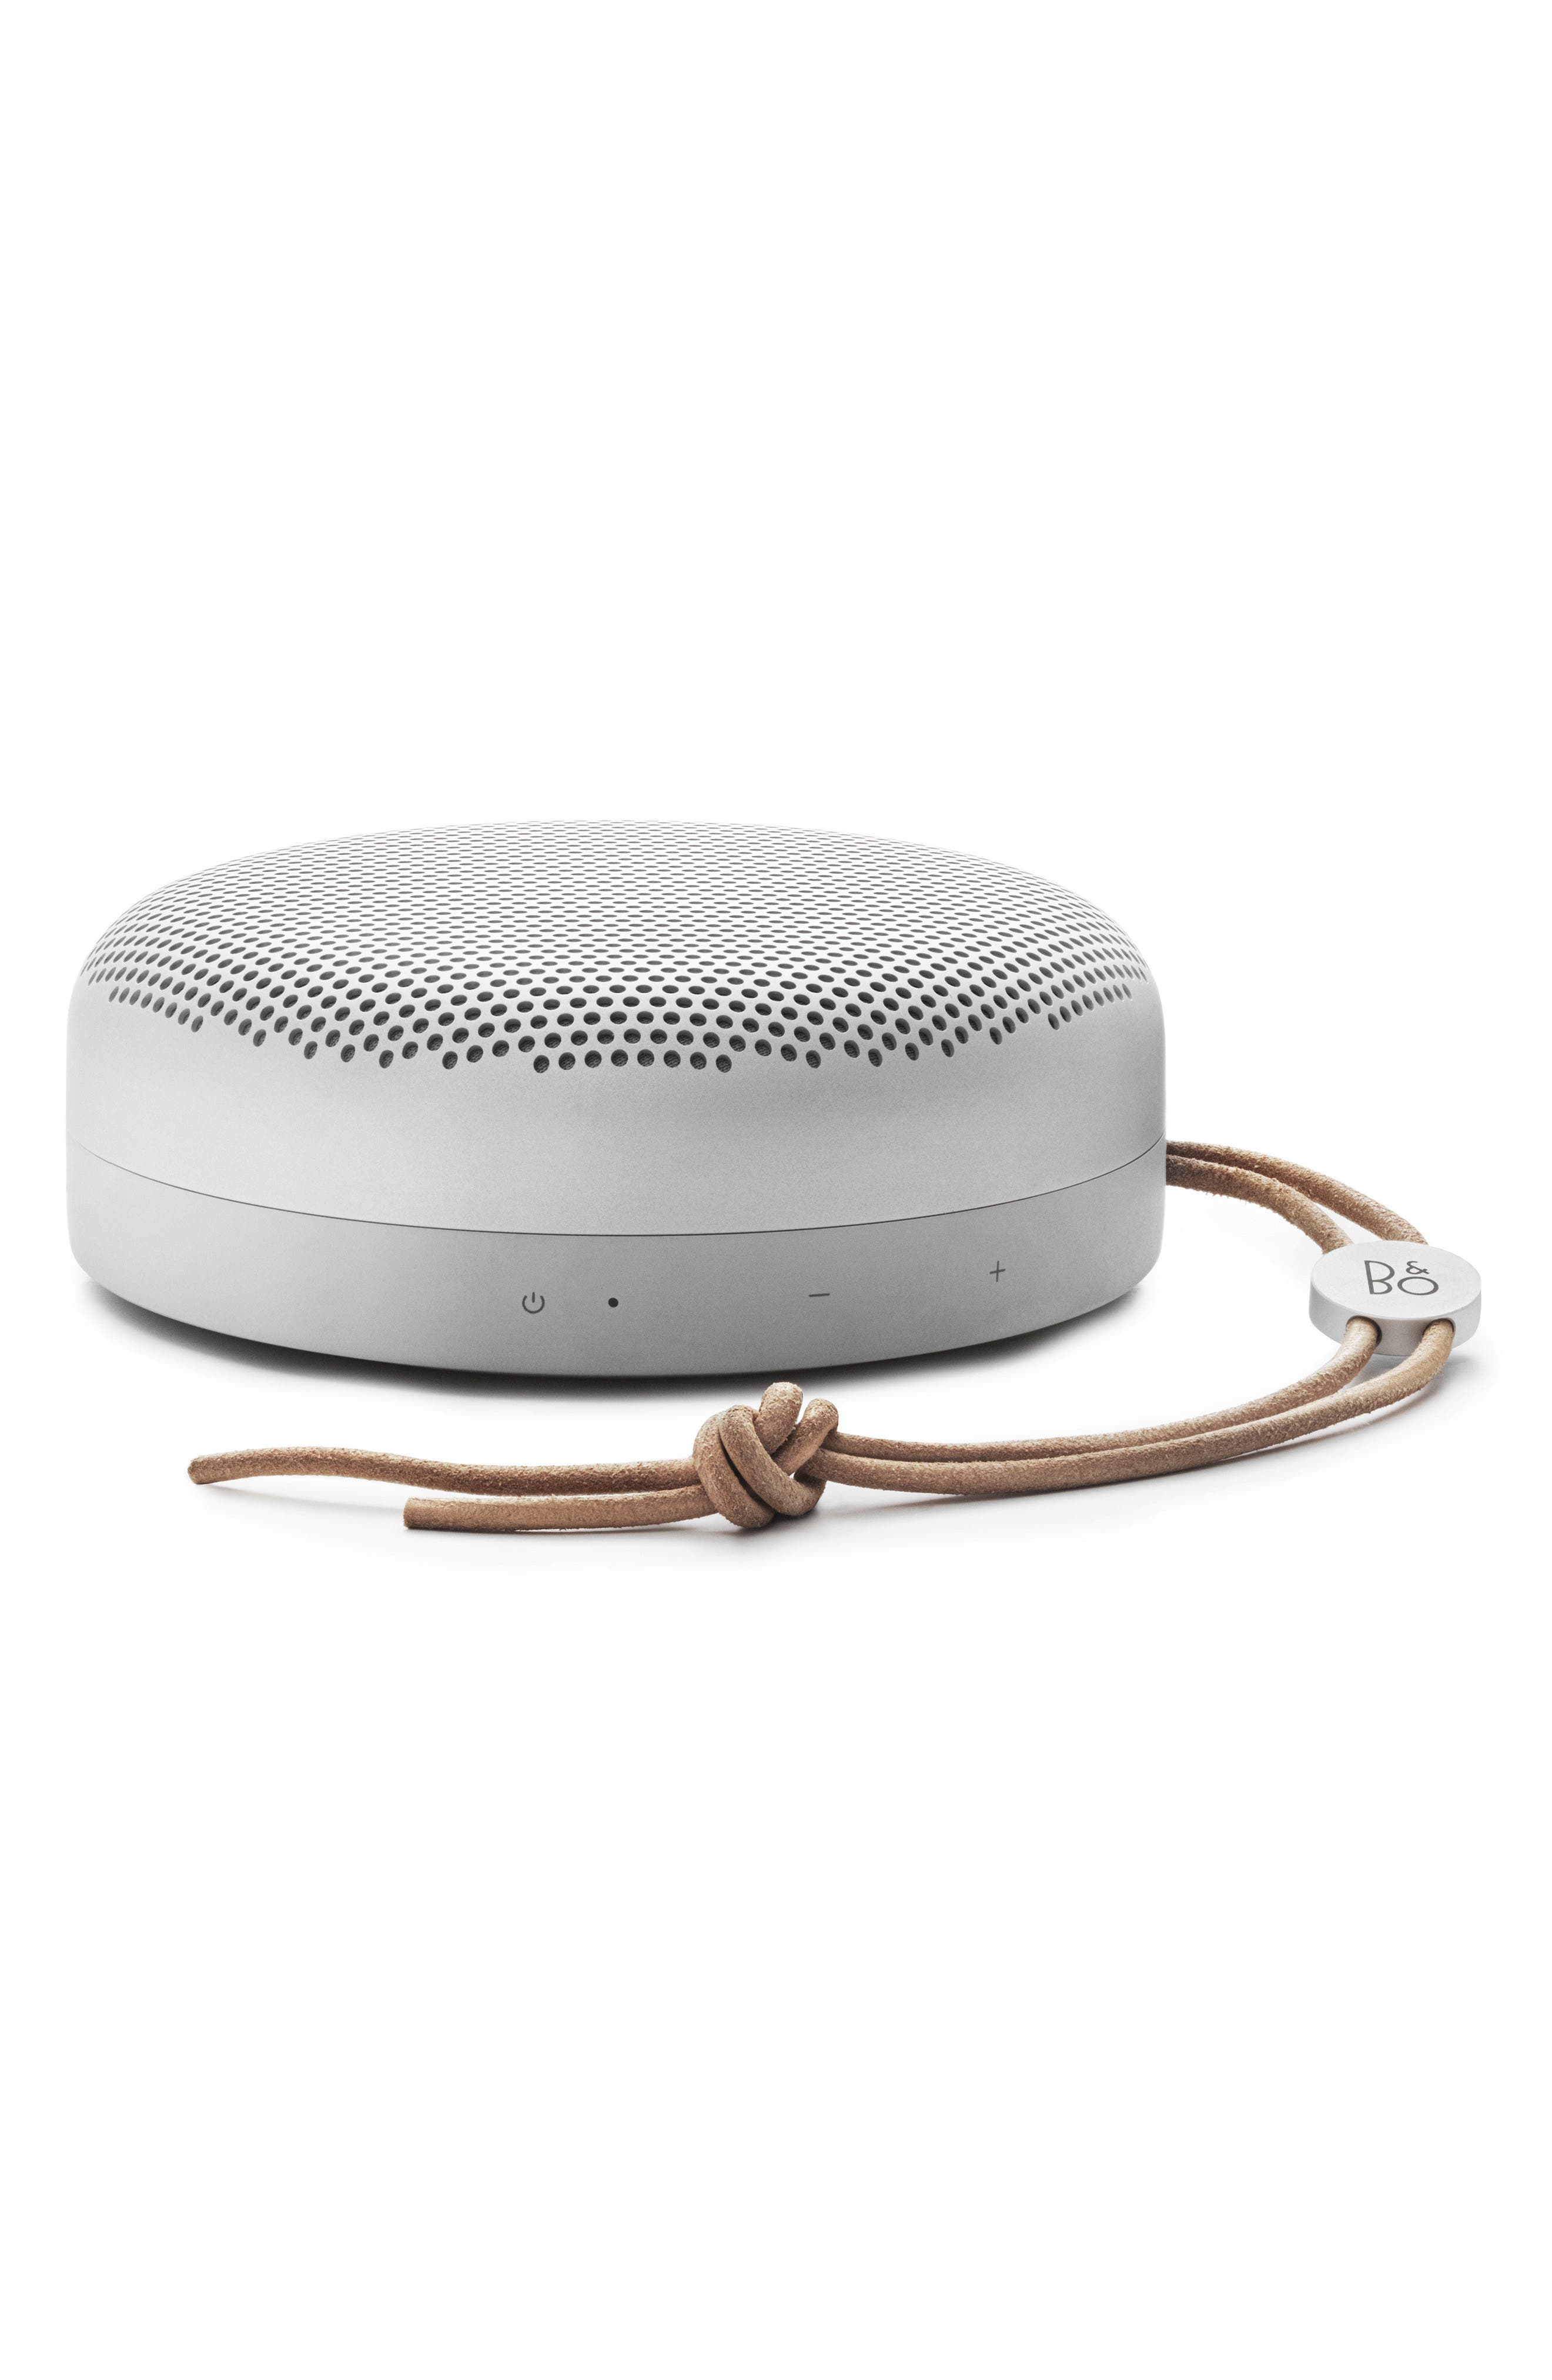 A1 Portable Bluetooth Speaker,                             Alternate thumbnail 4, color,                             NATURAL